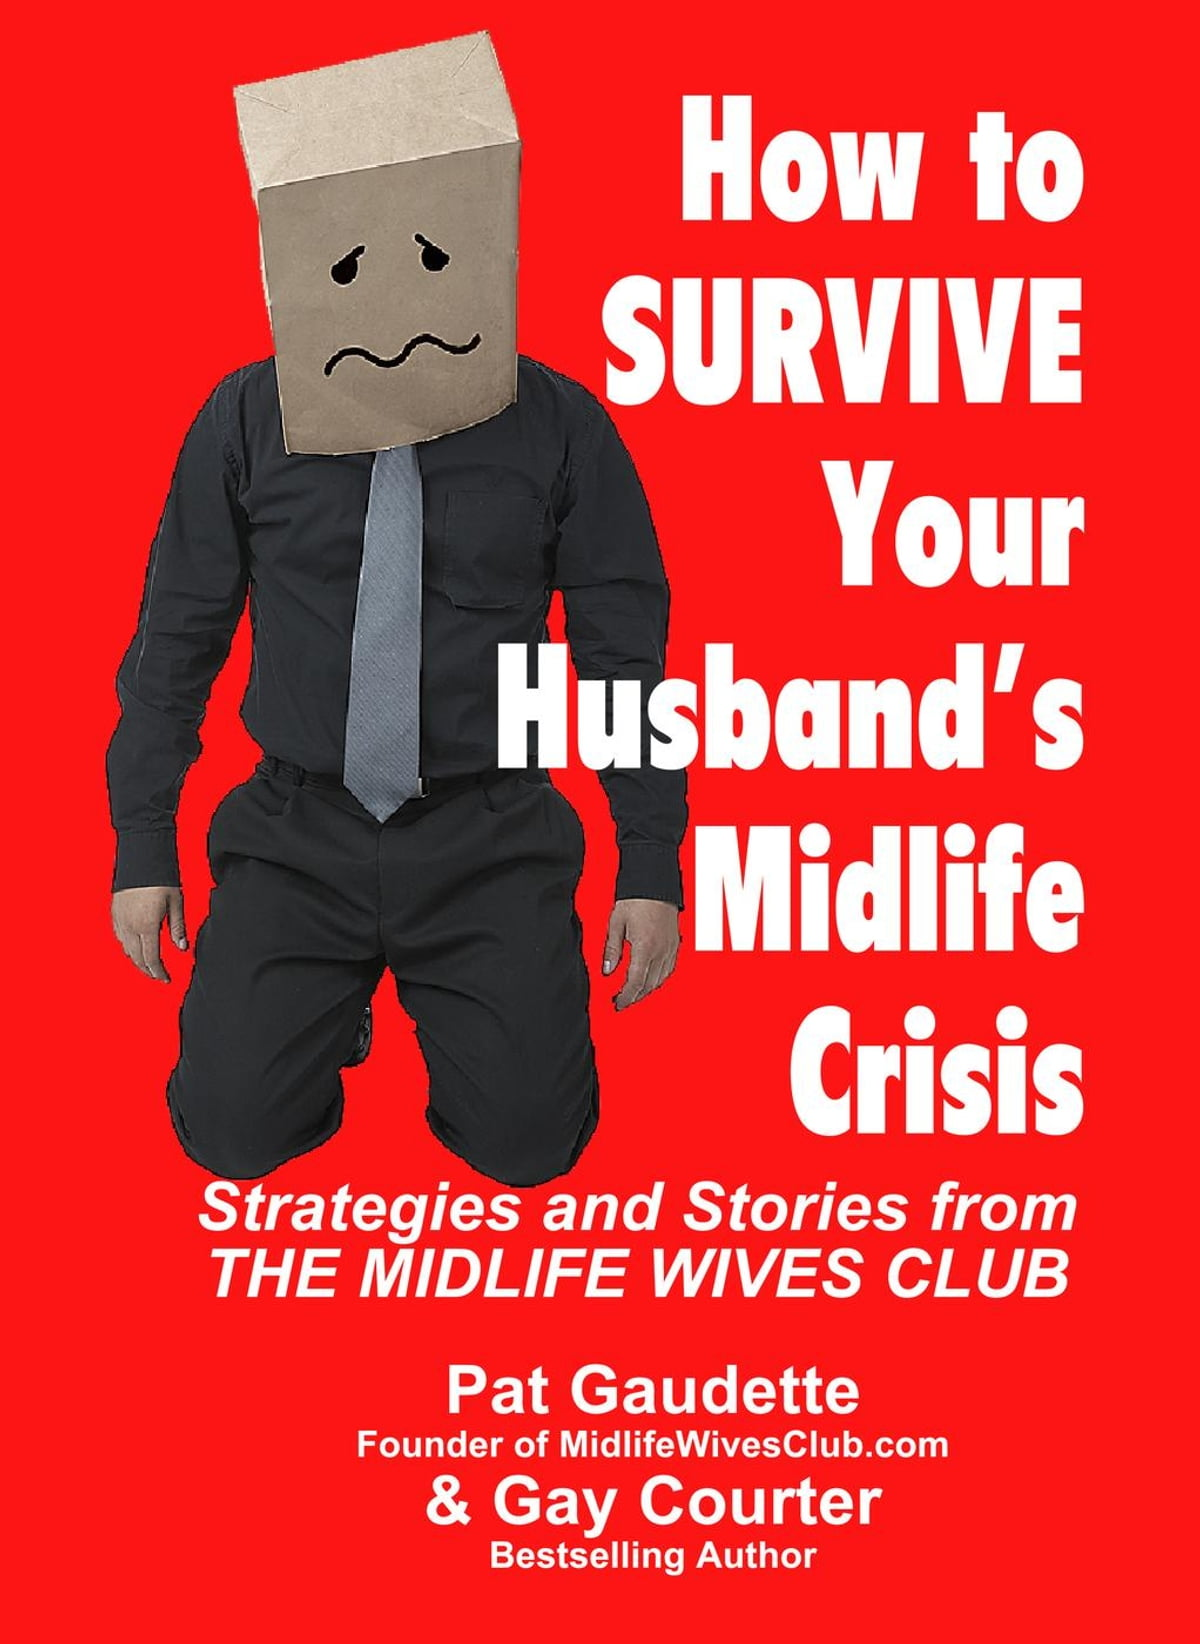 When a midlife crisis comes and how to survive it